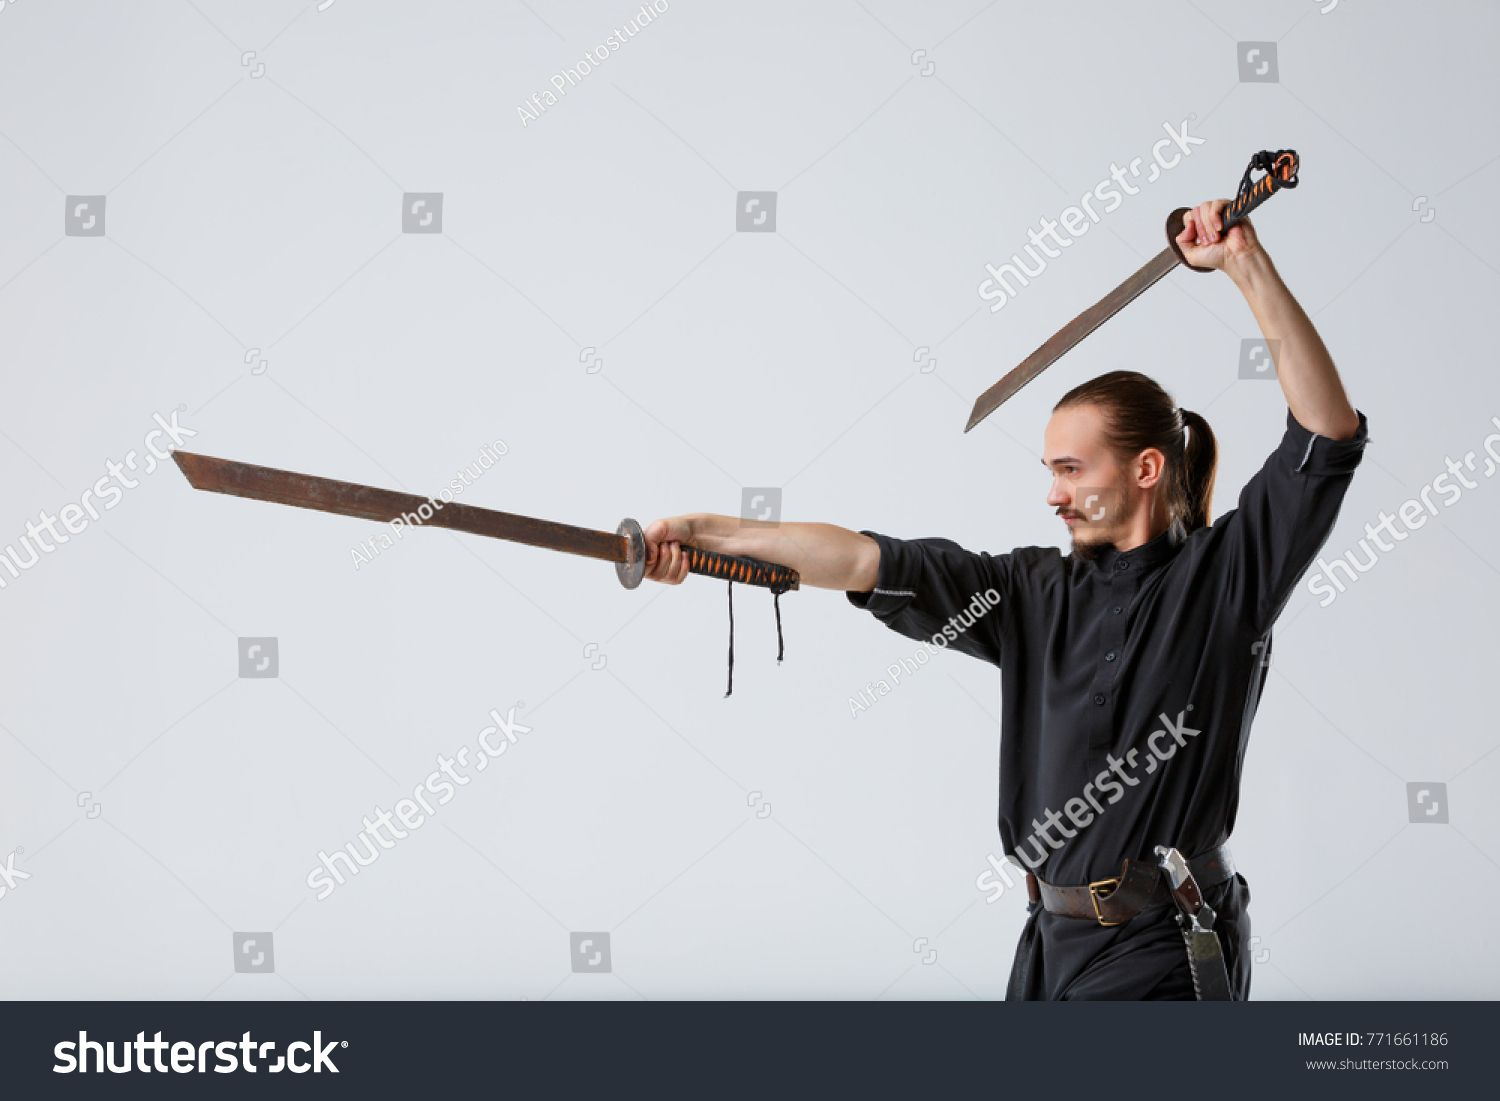 Stock Photo A Ninja Man Stands Sideways With Swords In A Fighting